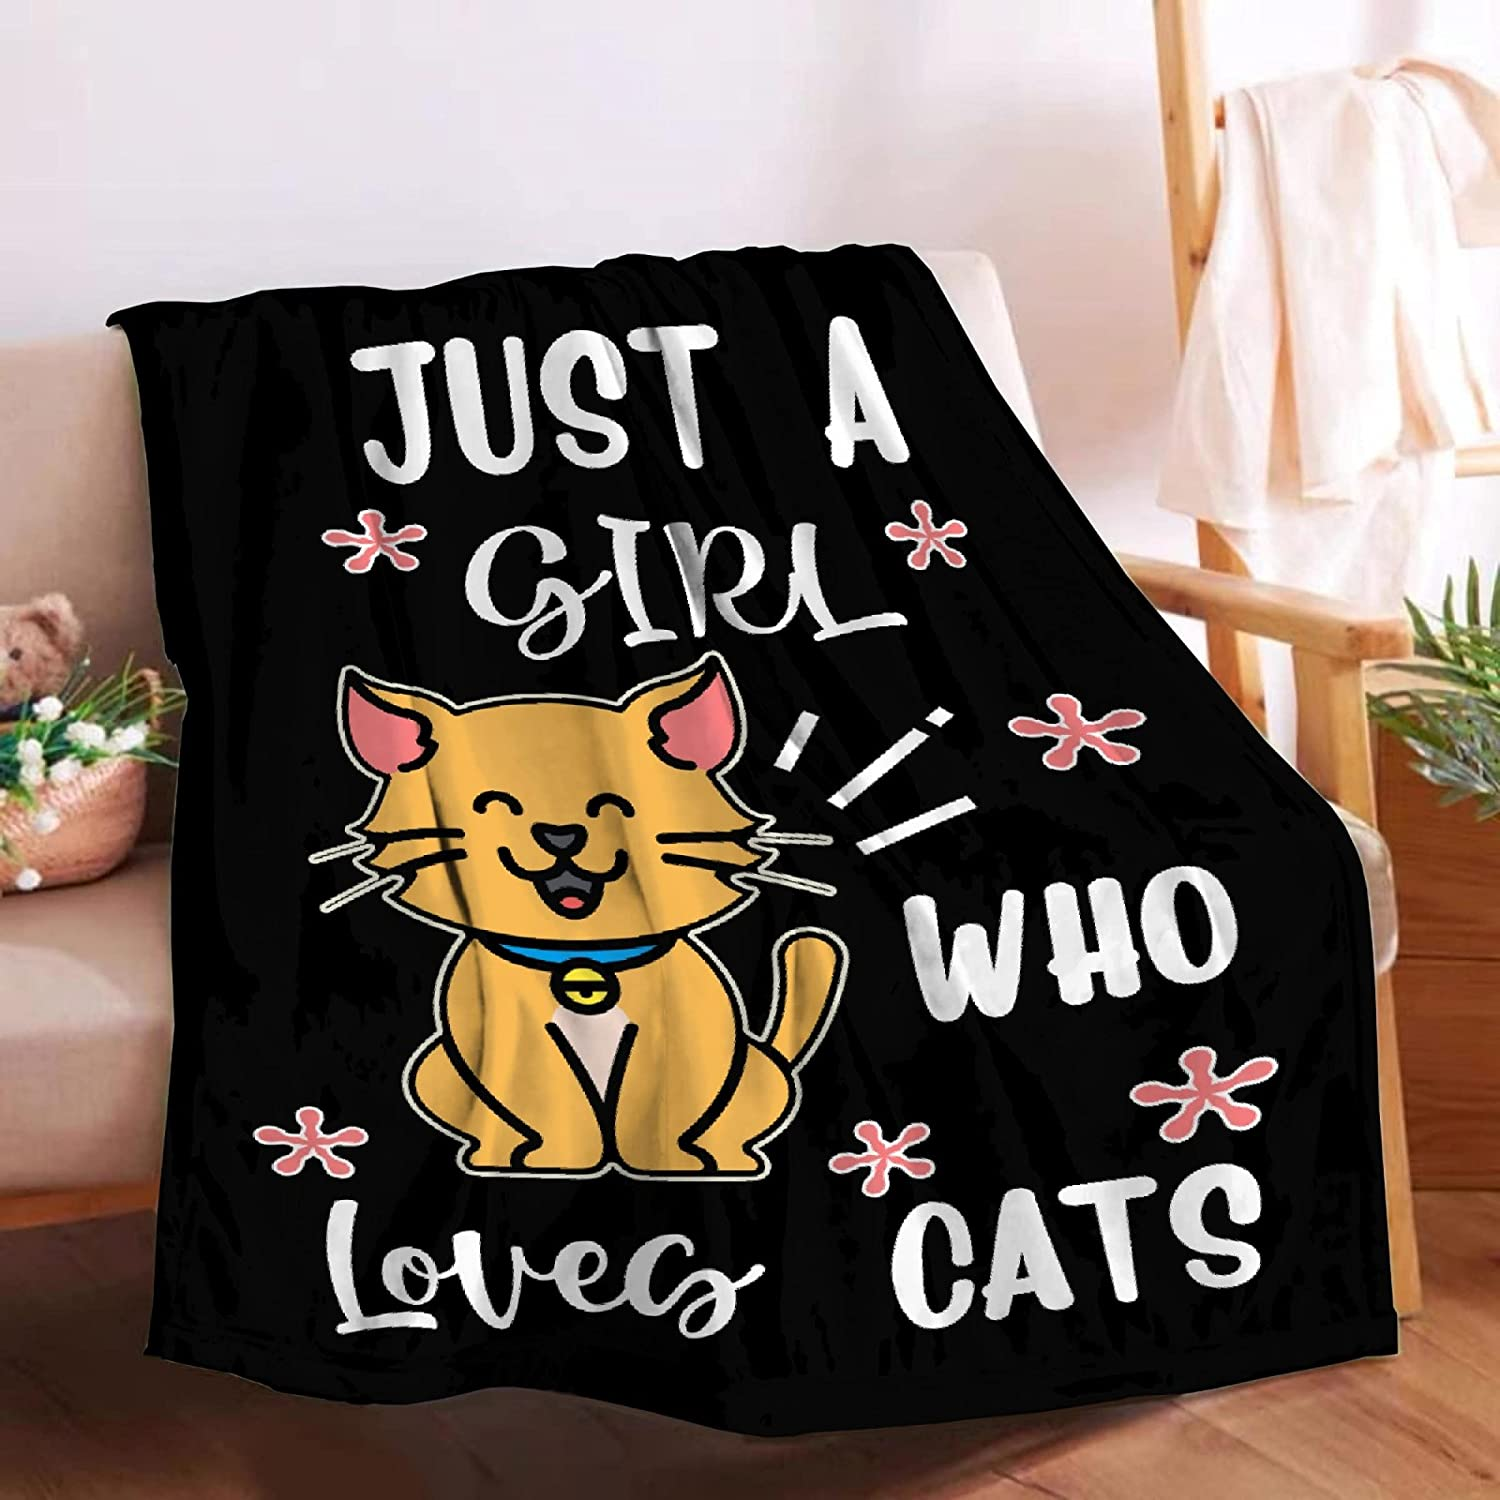 Microfiber Flannel Throw Blanket Mesa Mall Just A Supe Who Cats shipfree Loves Girl